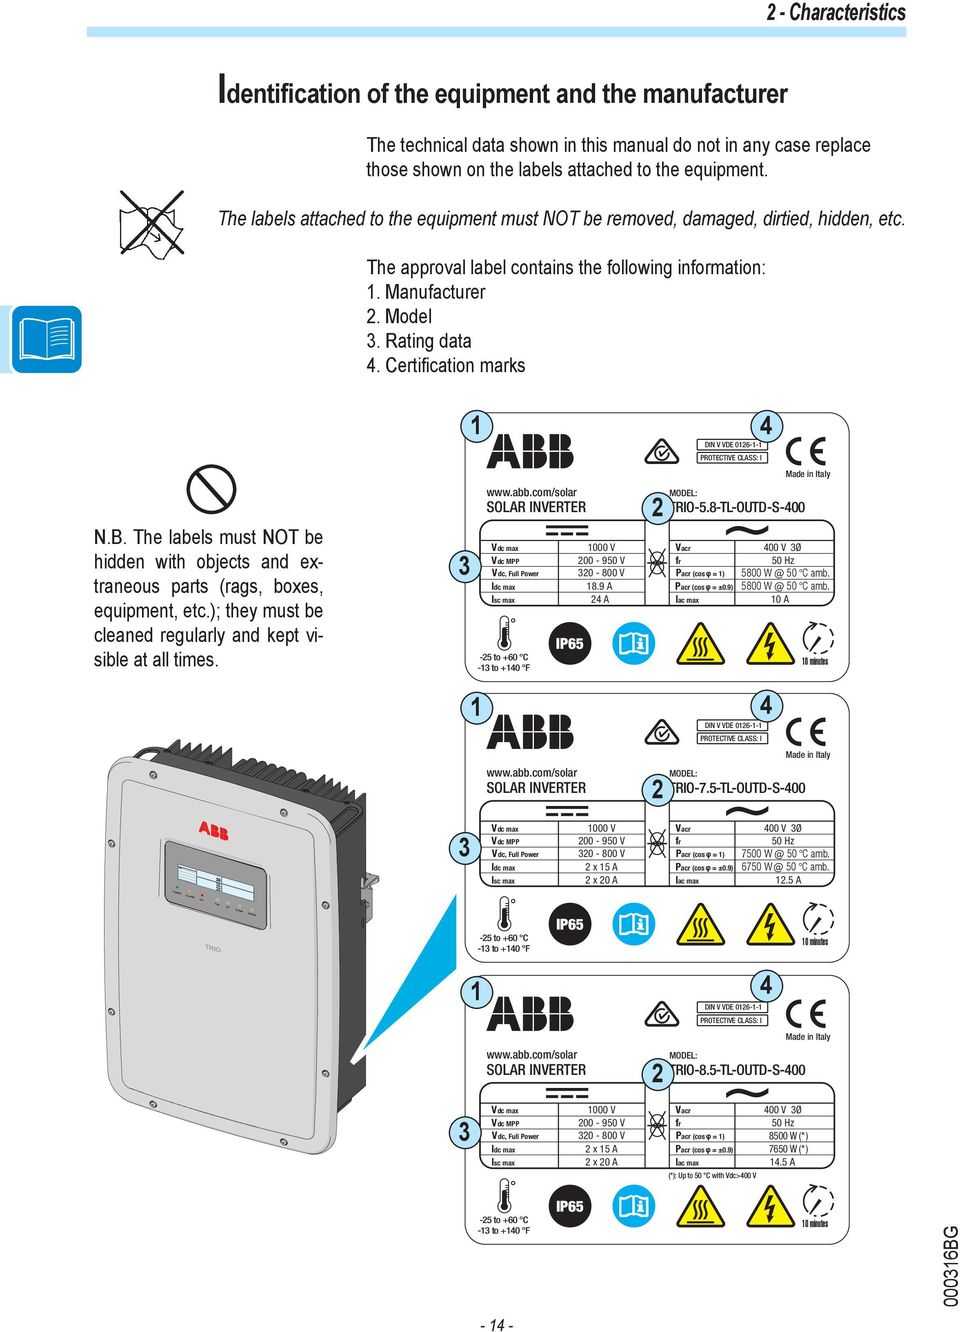 Abb Solar Inverters Product Manual Trio 58 75 85 Tl Outd To Garden Light Circuit Further 5000 Watt Power Inverter Schematic Certification Marks Nb The Labels Must Not Be Hidden With Objects And Extraneous Parts Rags